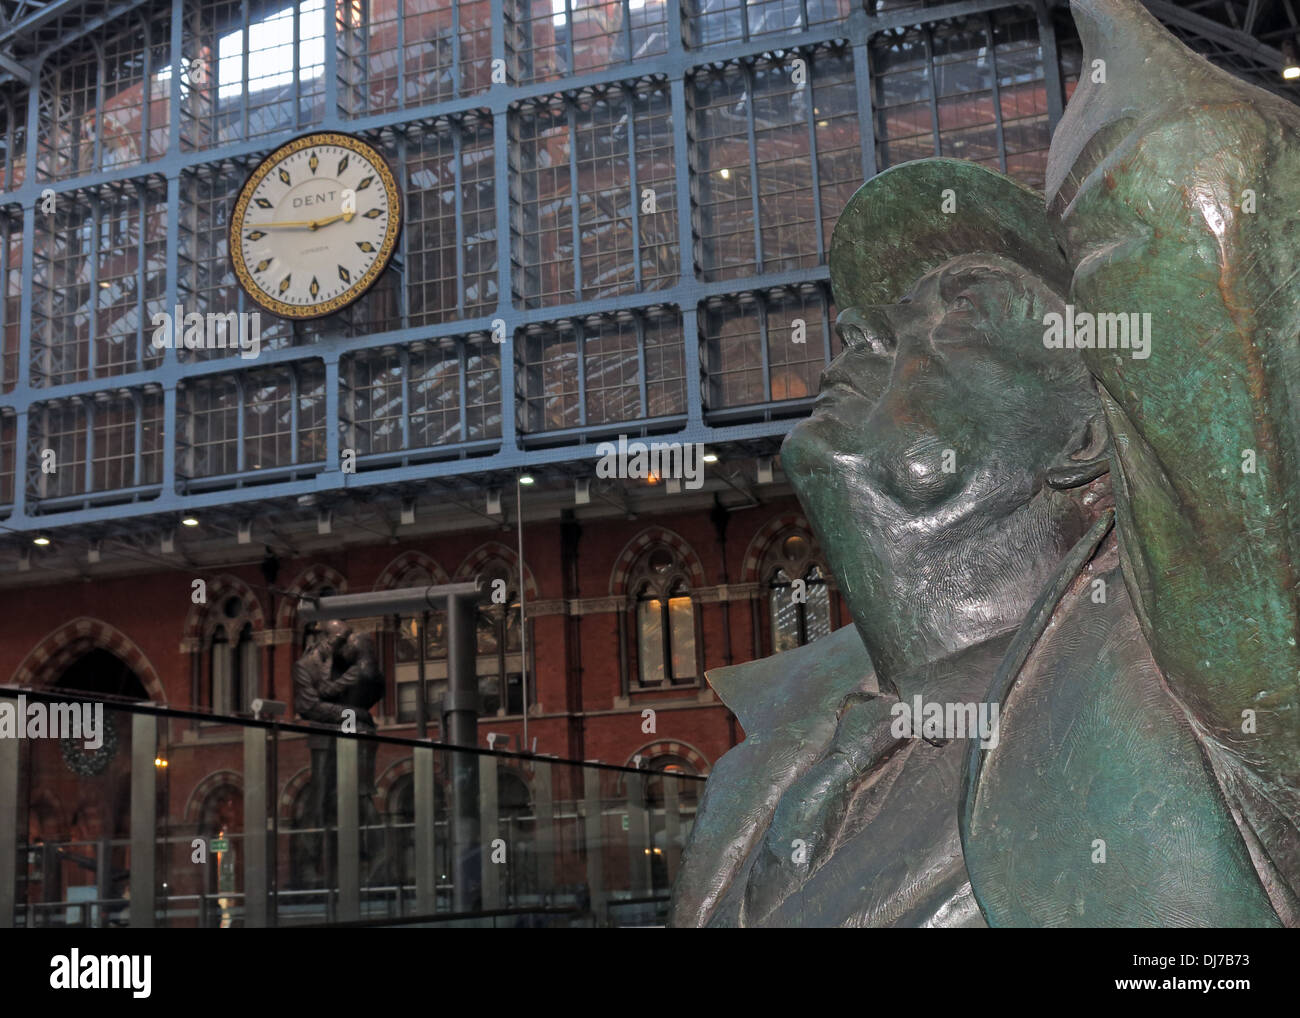 St Pancras Station interior Camden London England UK clock and Sir John Beteman - Stock Image